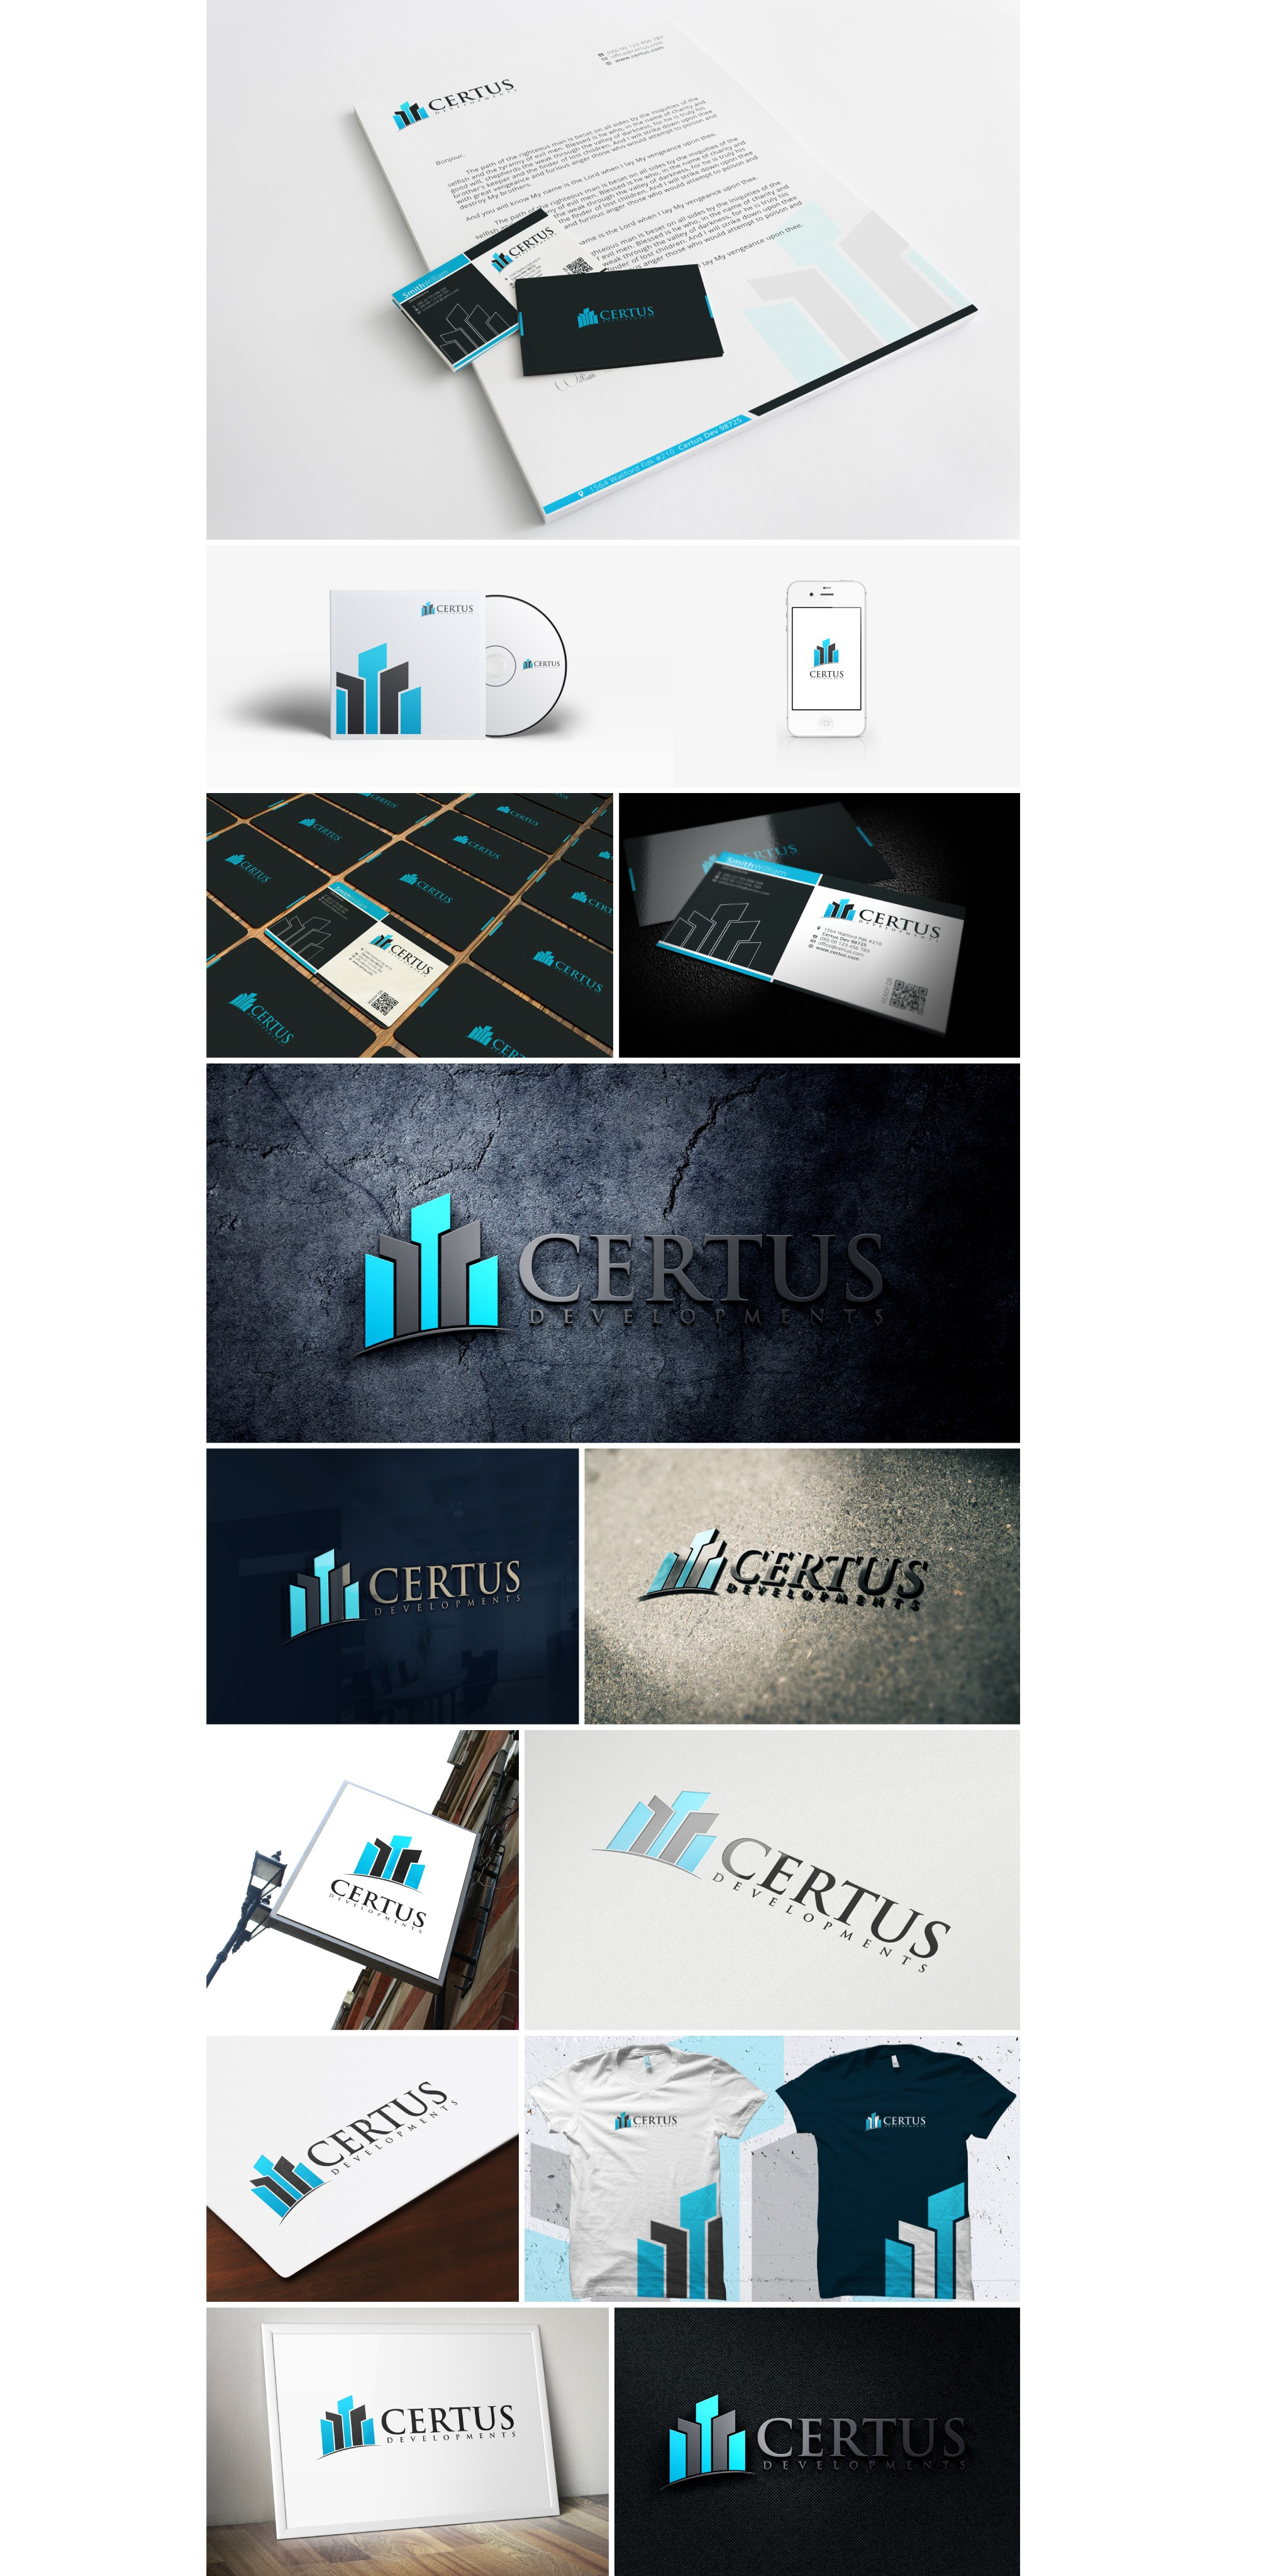 New company Certus Developments, LLC is looking for branding recognition!